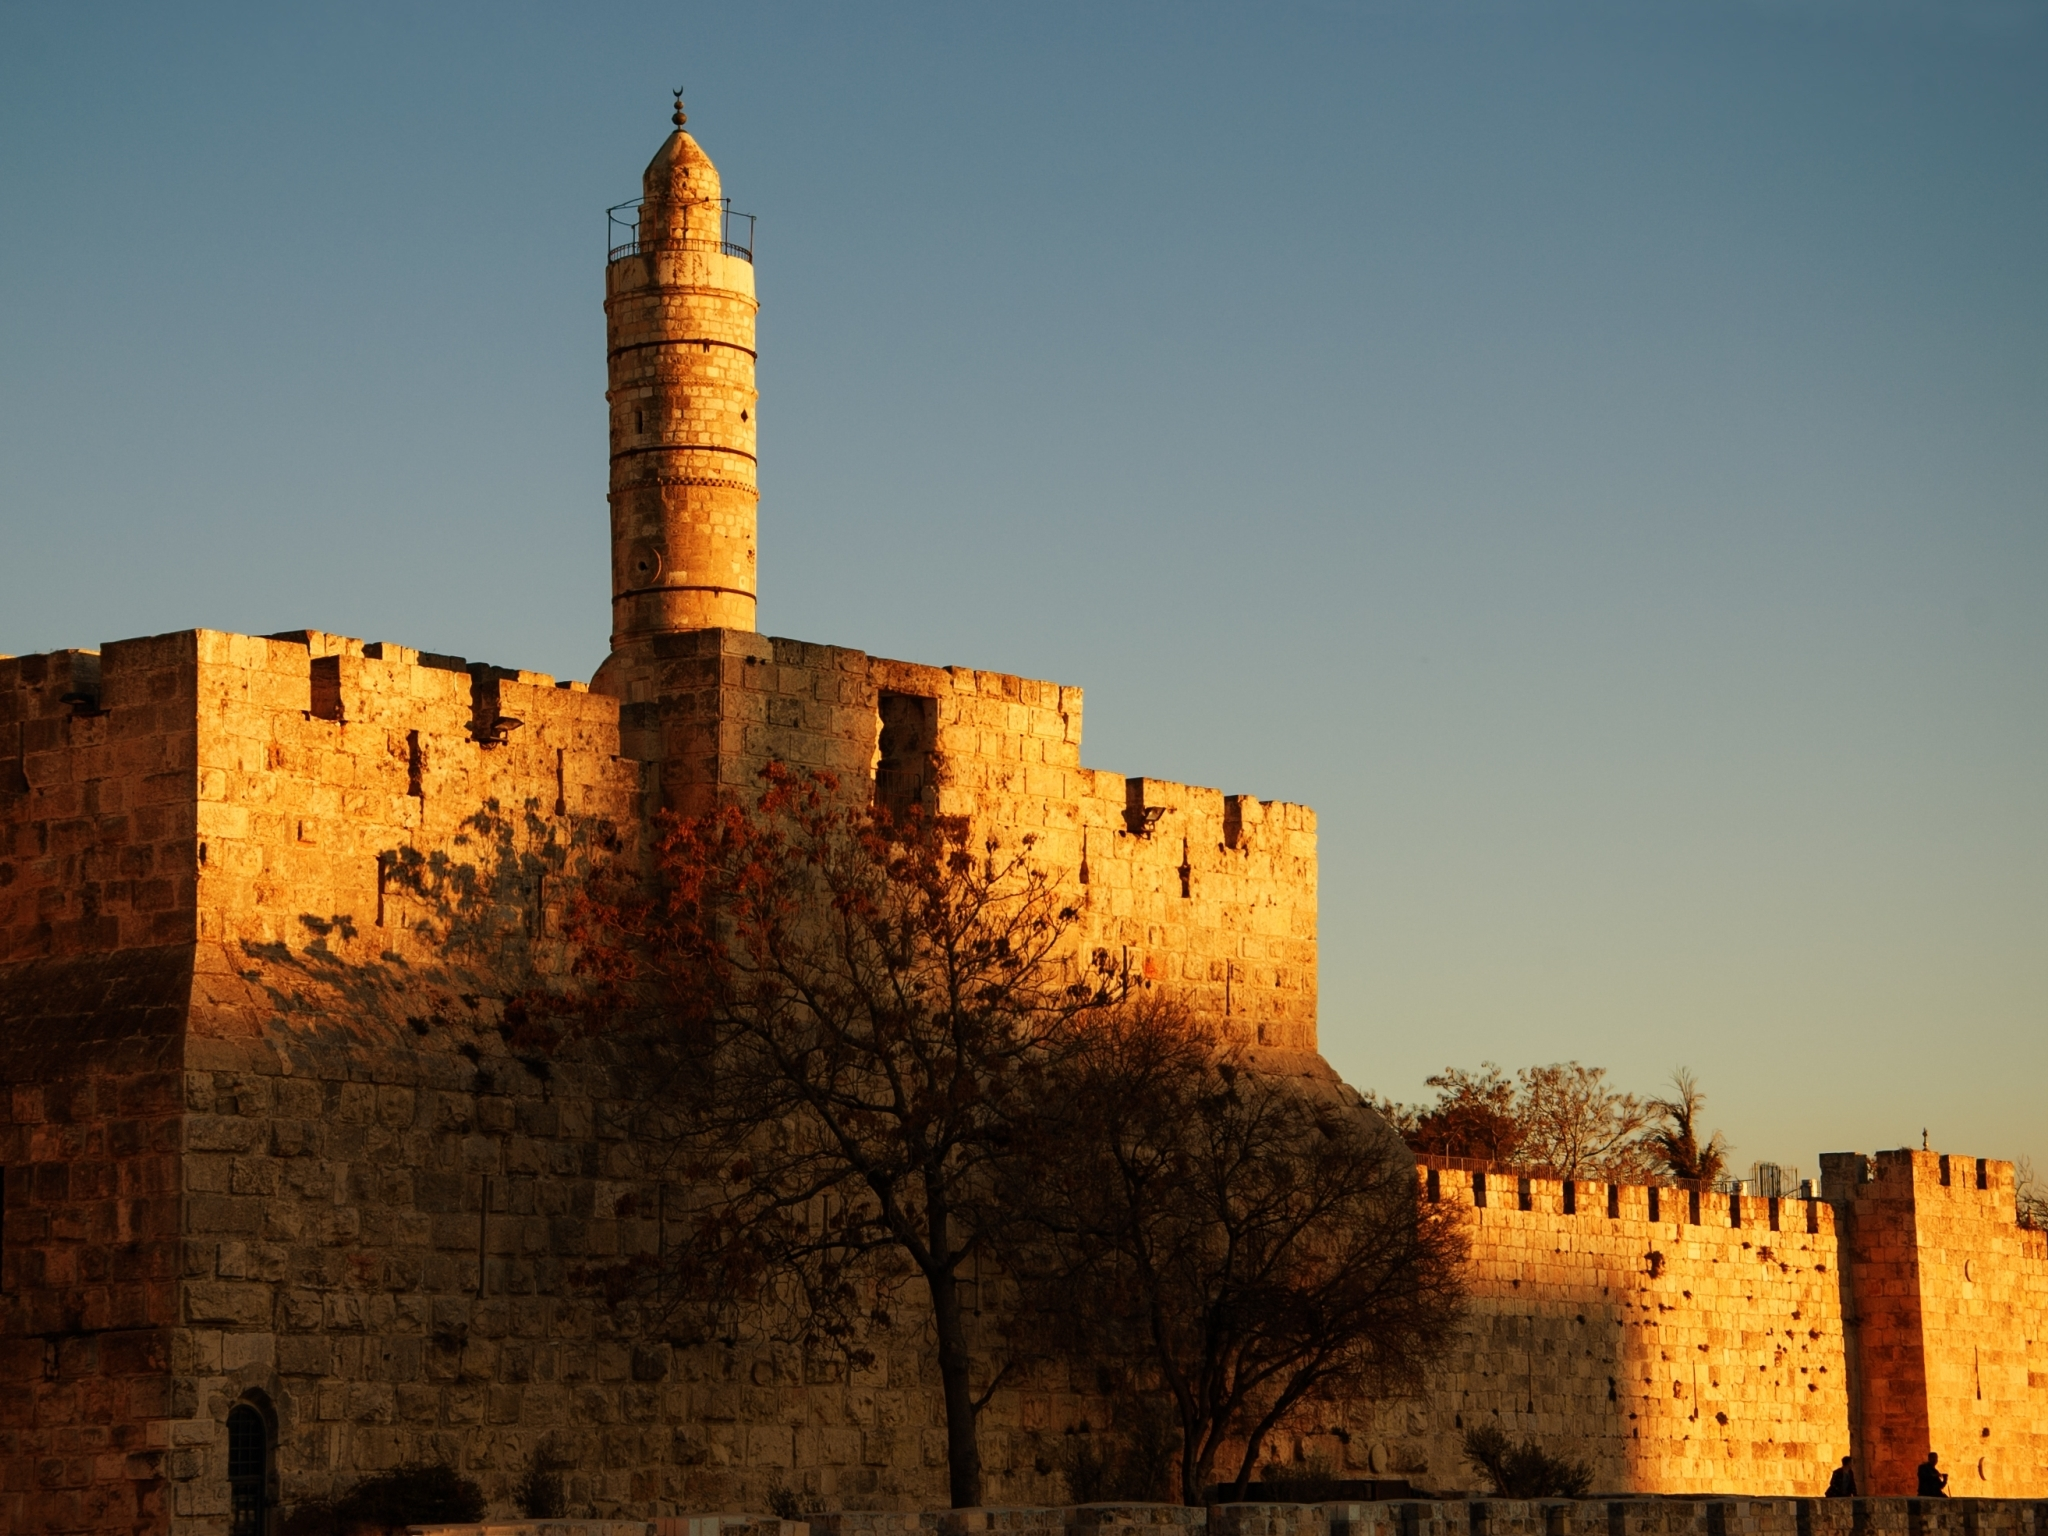 Tower of David (Citadel)